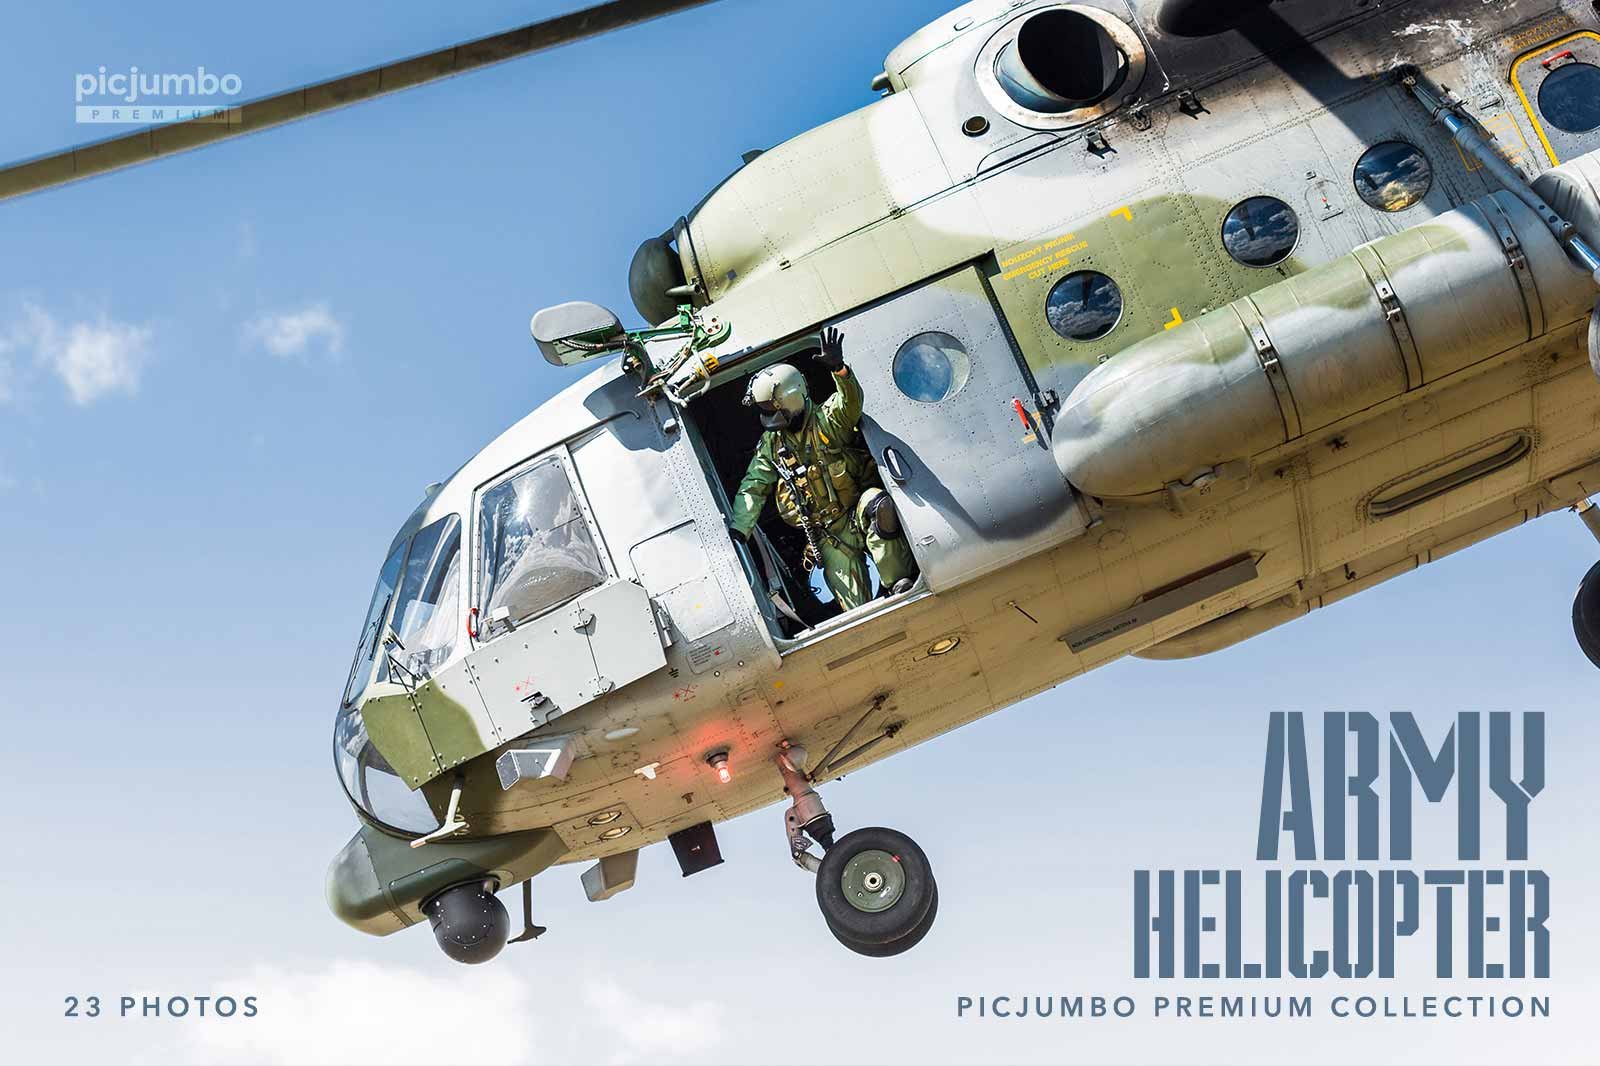 Army Helicopter — get it now in picjumbo PREMIUM!